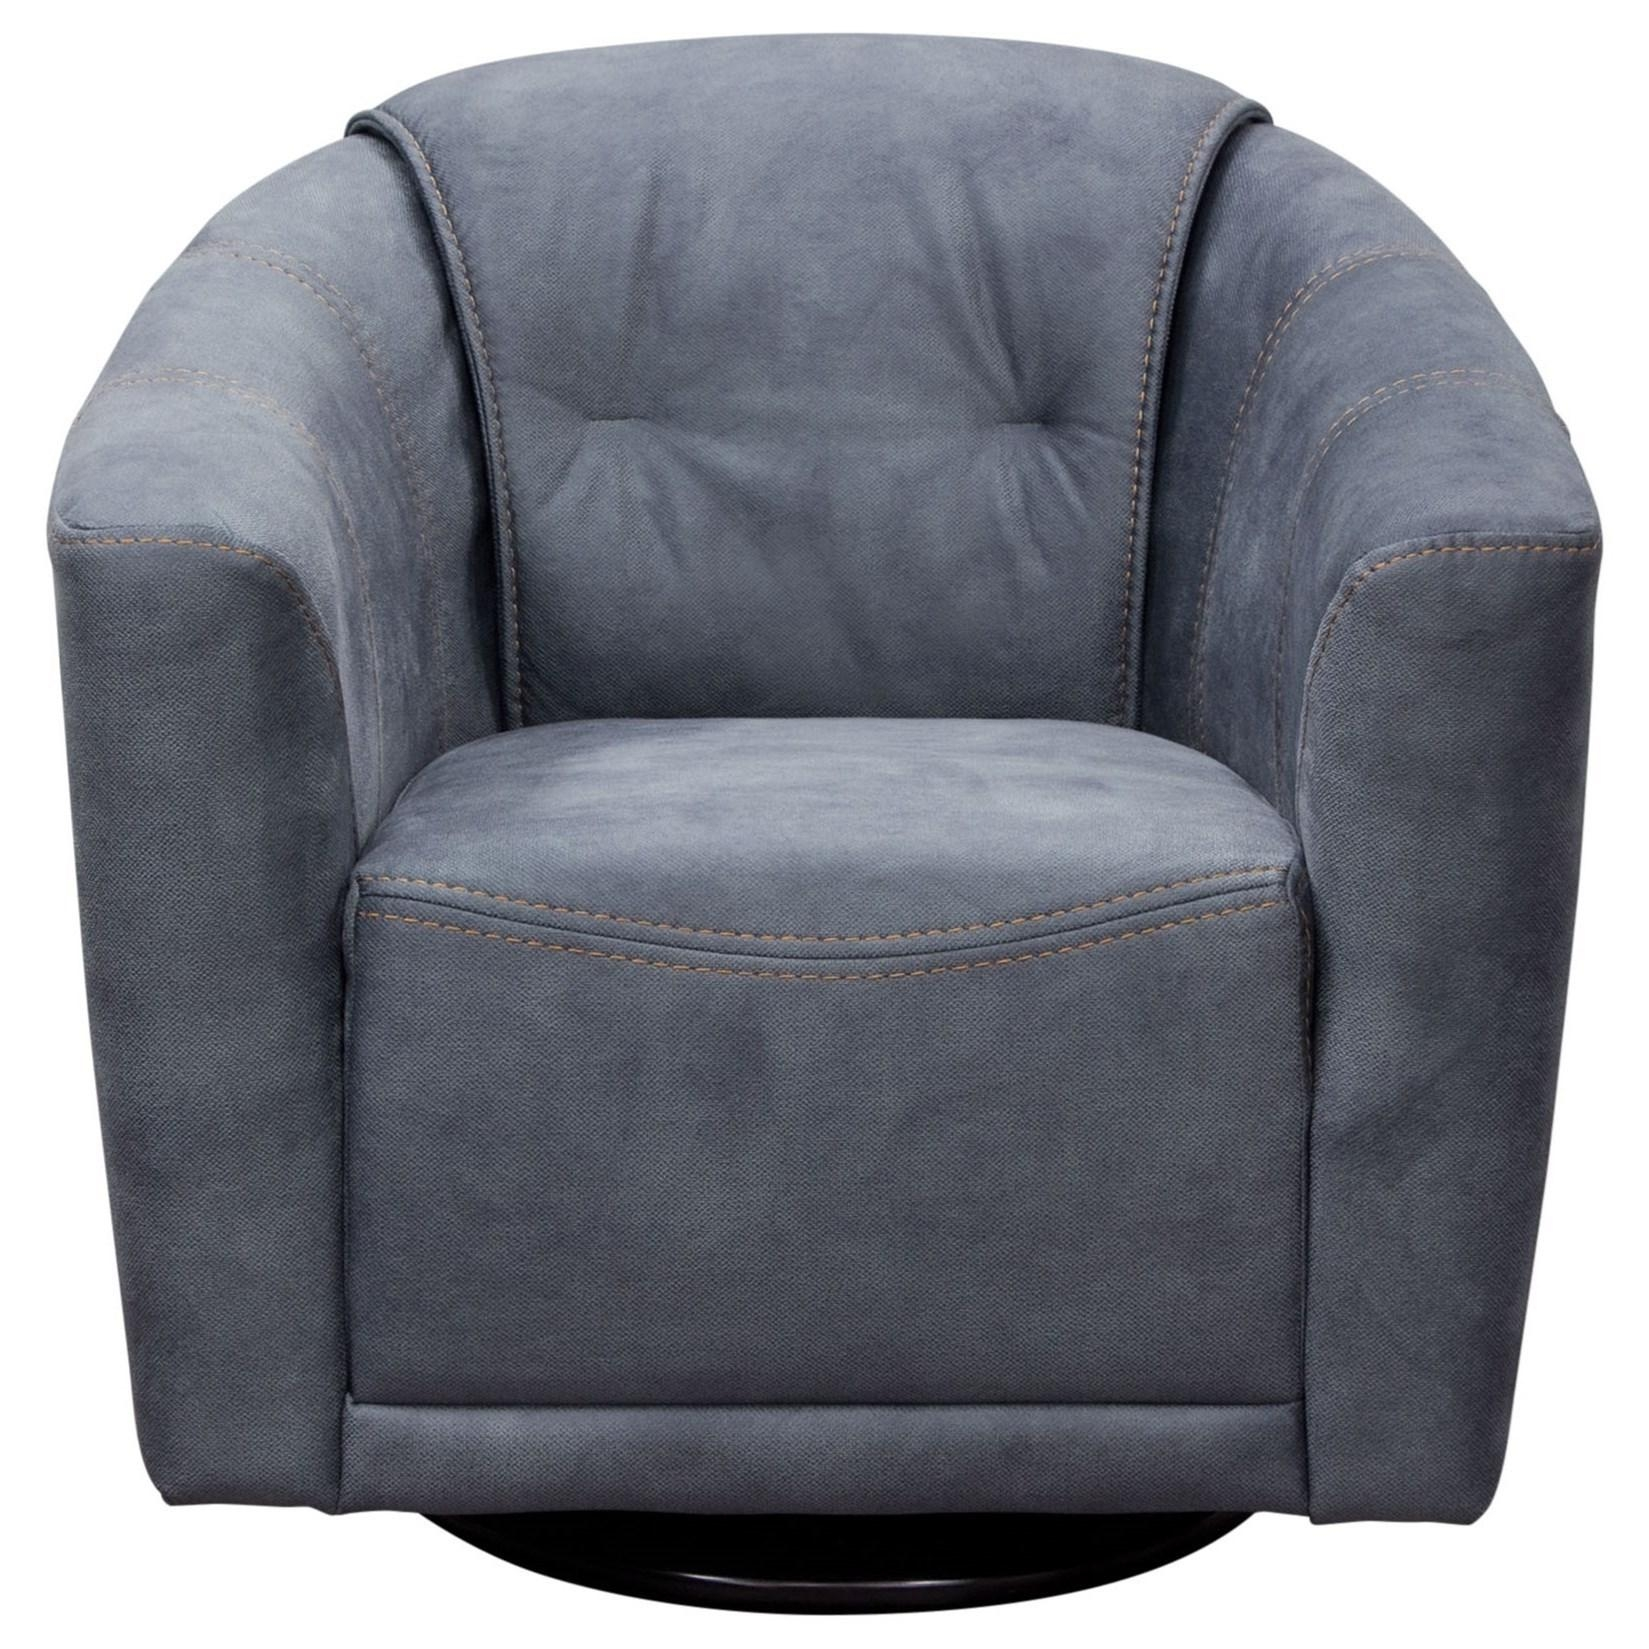 Dfs Red Leather Swivel Chair: 20 Ideas Of Sofa With Swivel Chair